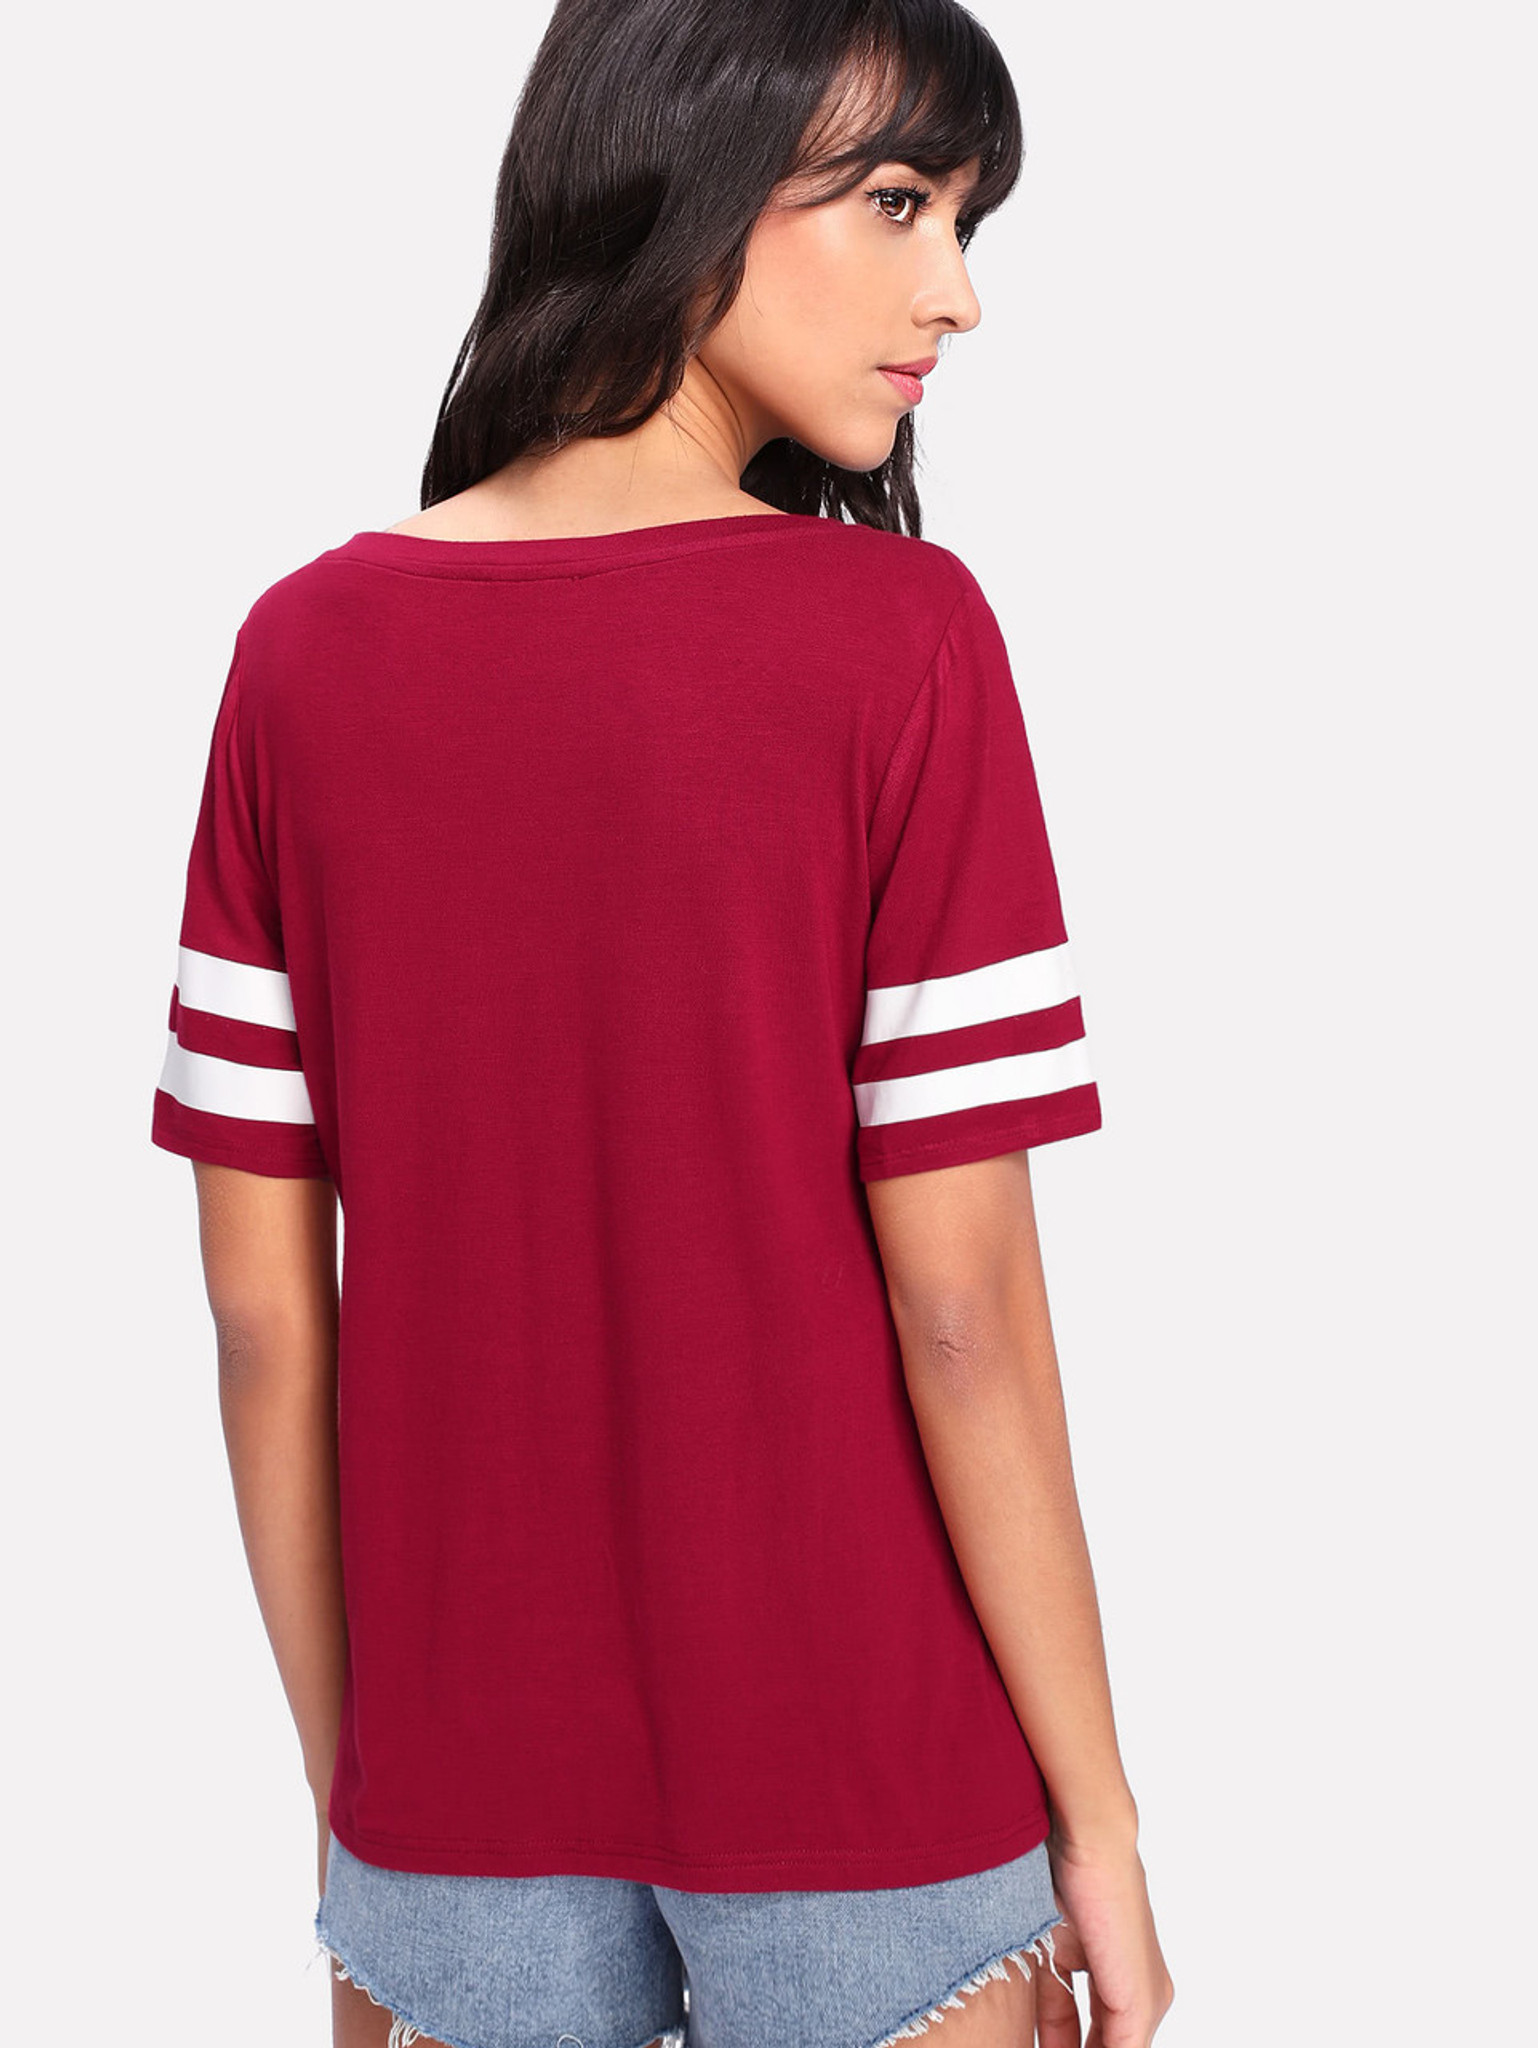 Fifth Avenue Women's RYZA Round Neck Striped T-Shirt - Red